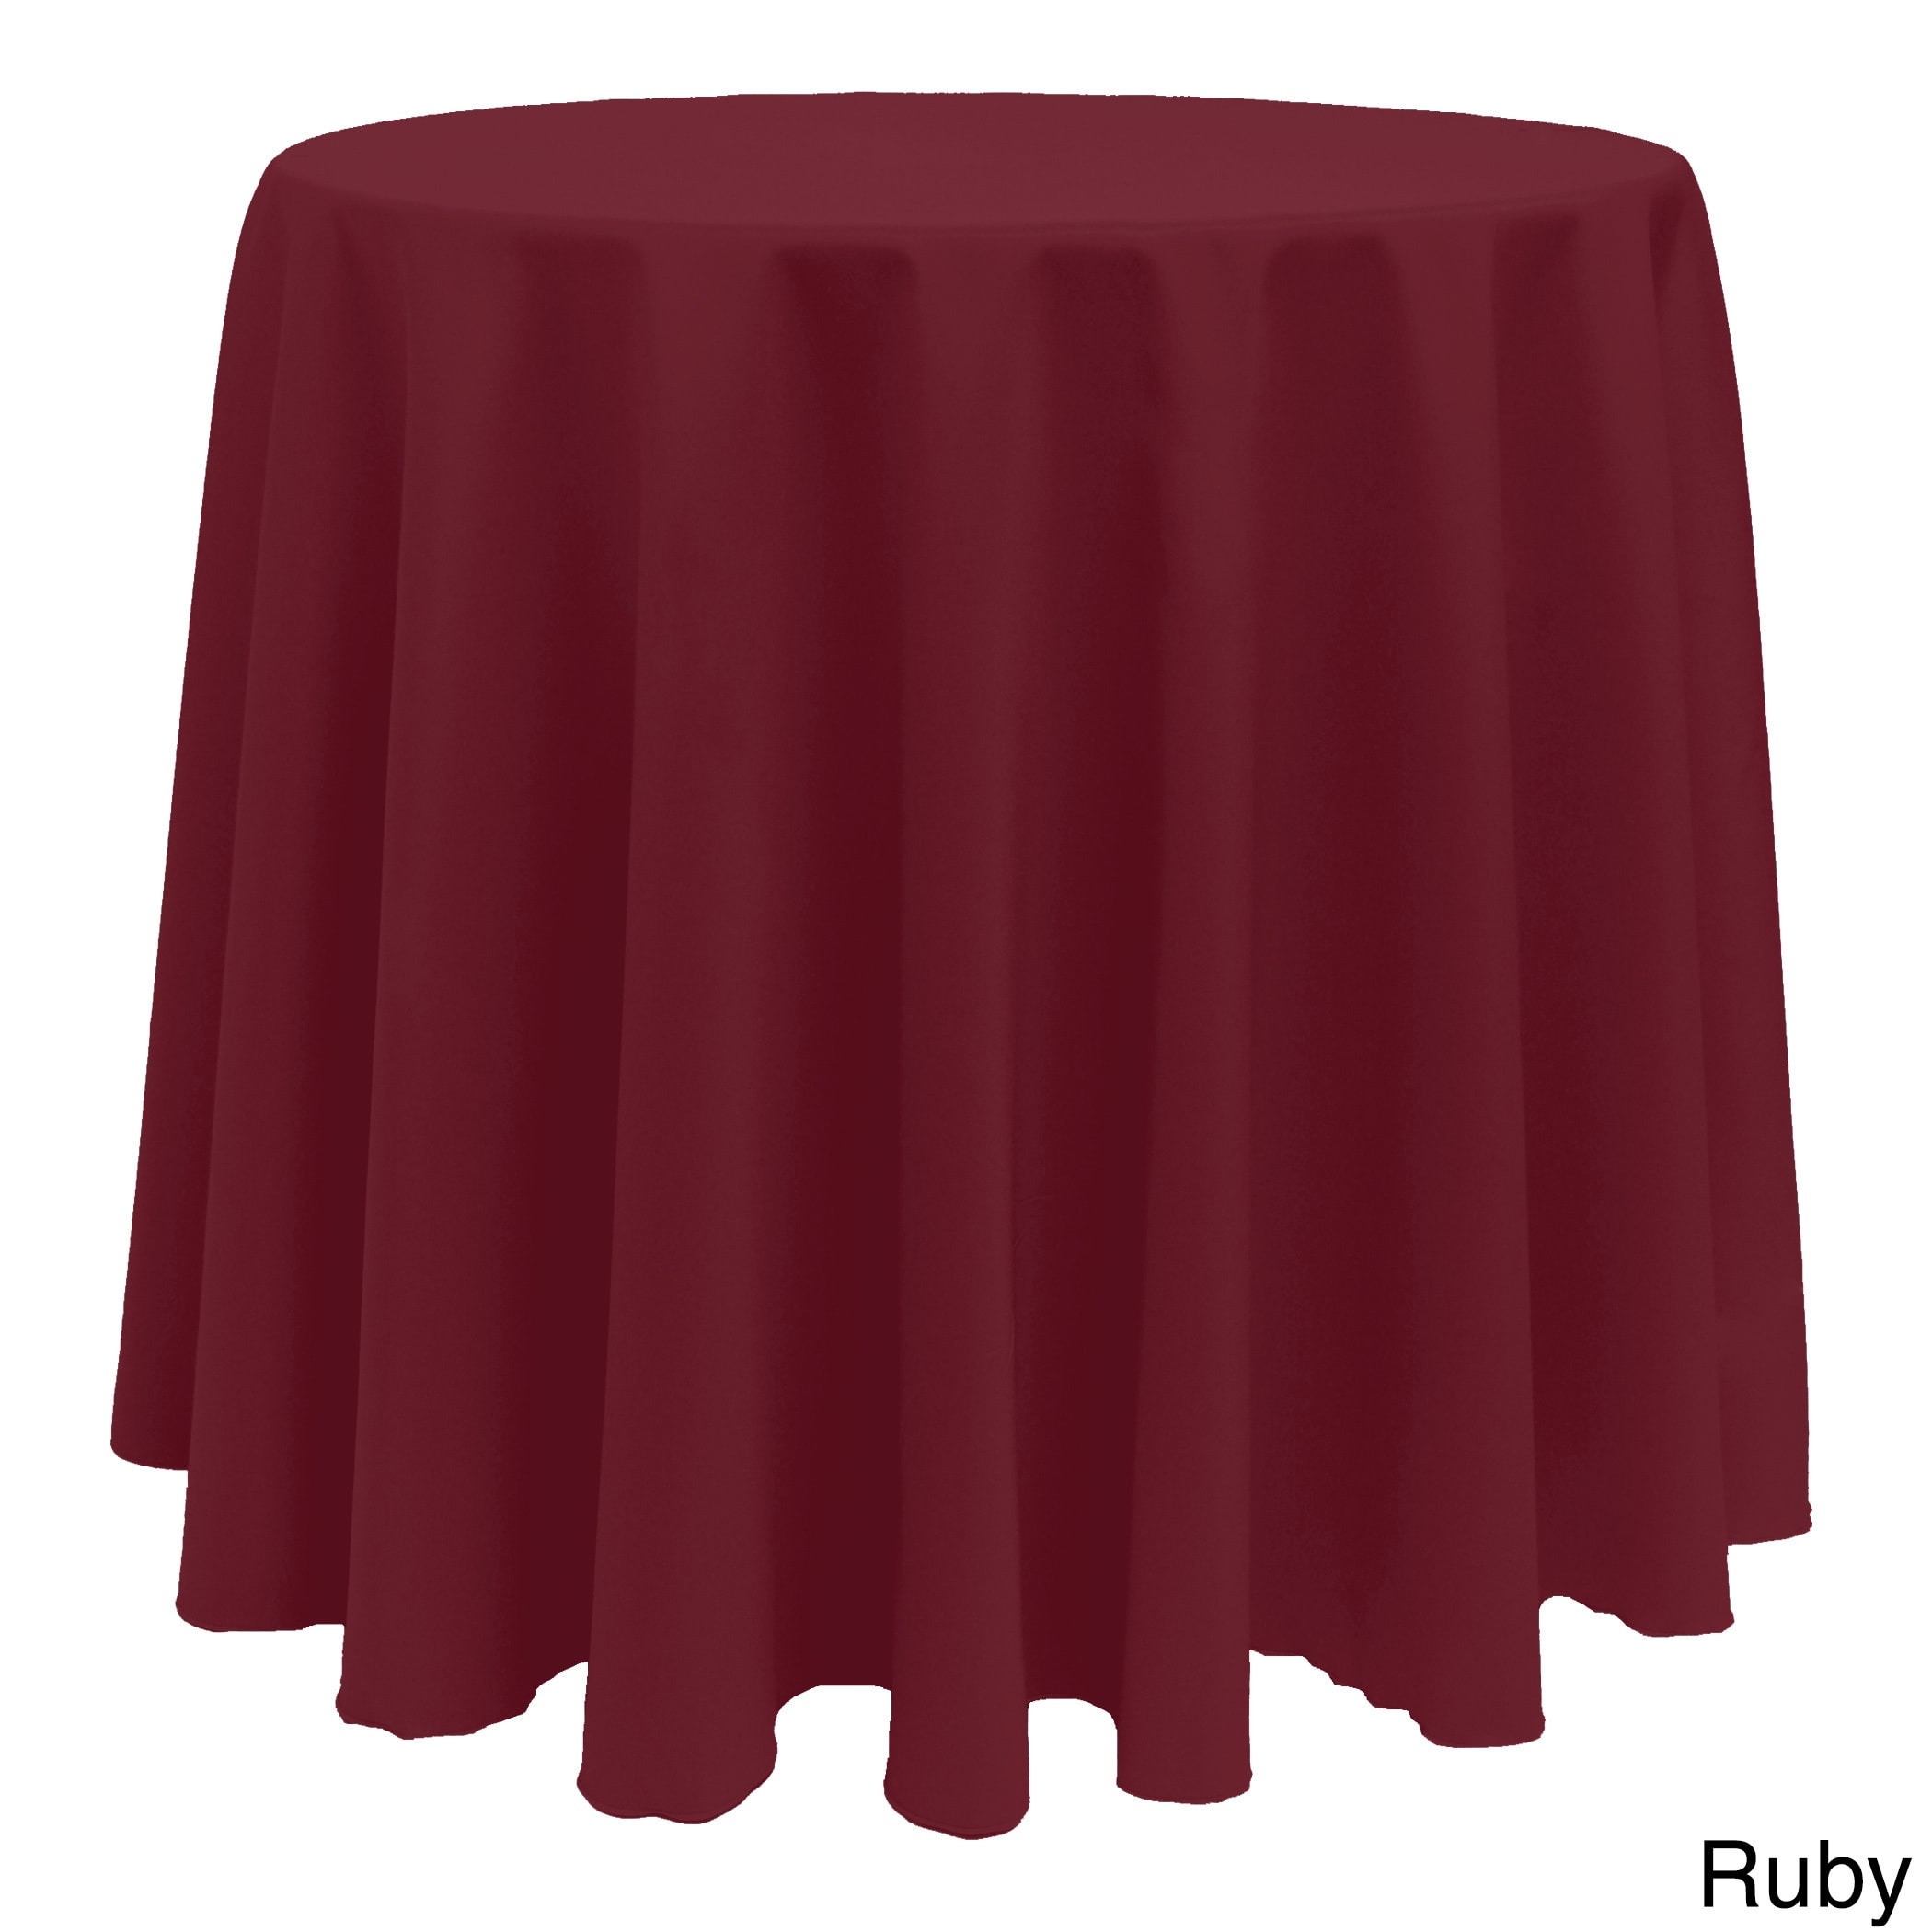 Vibrant Solid Color 90 Inch Round Tablecloth  Free Shipping On